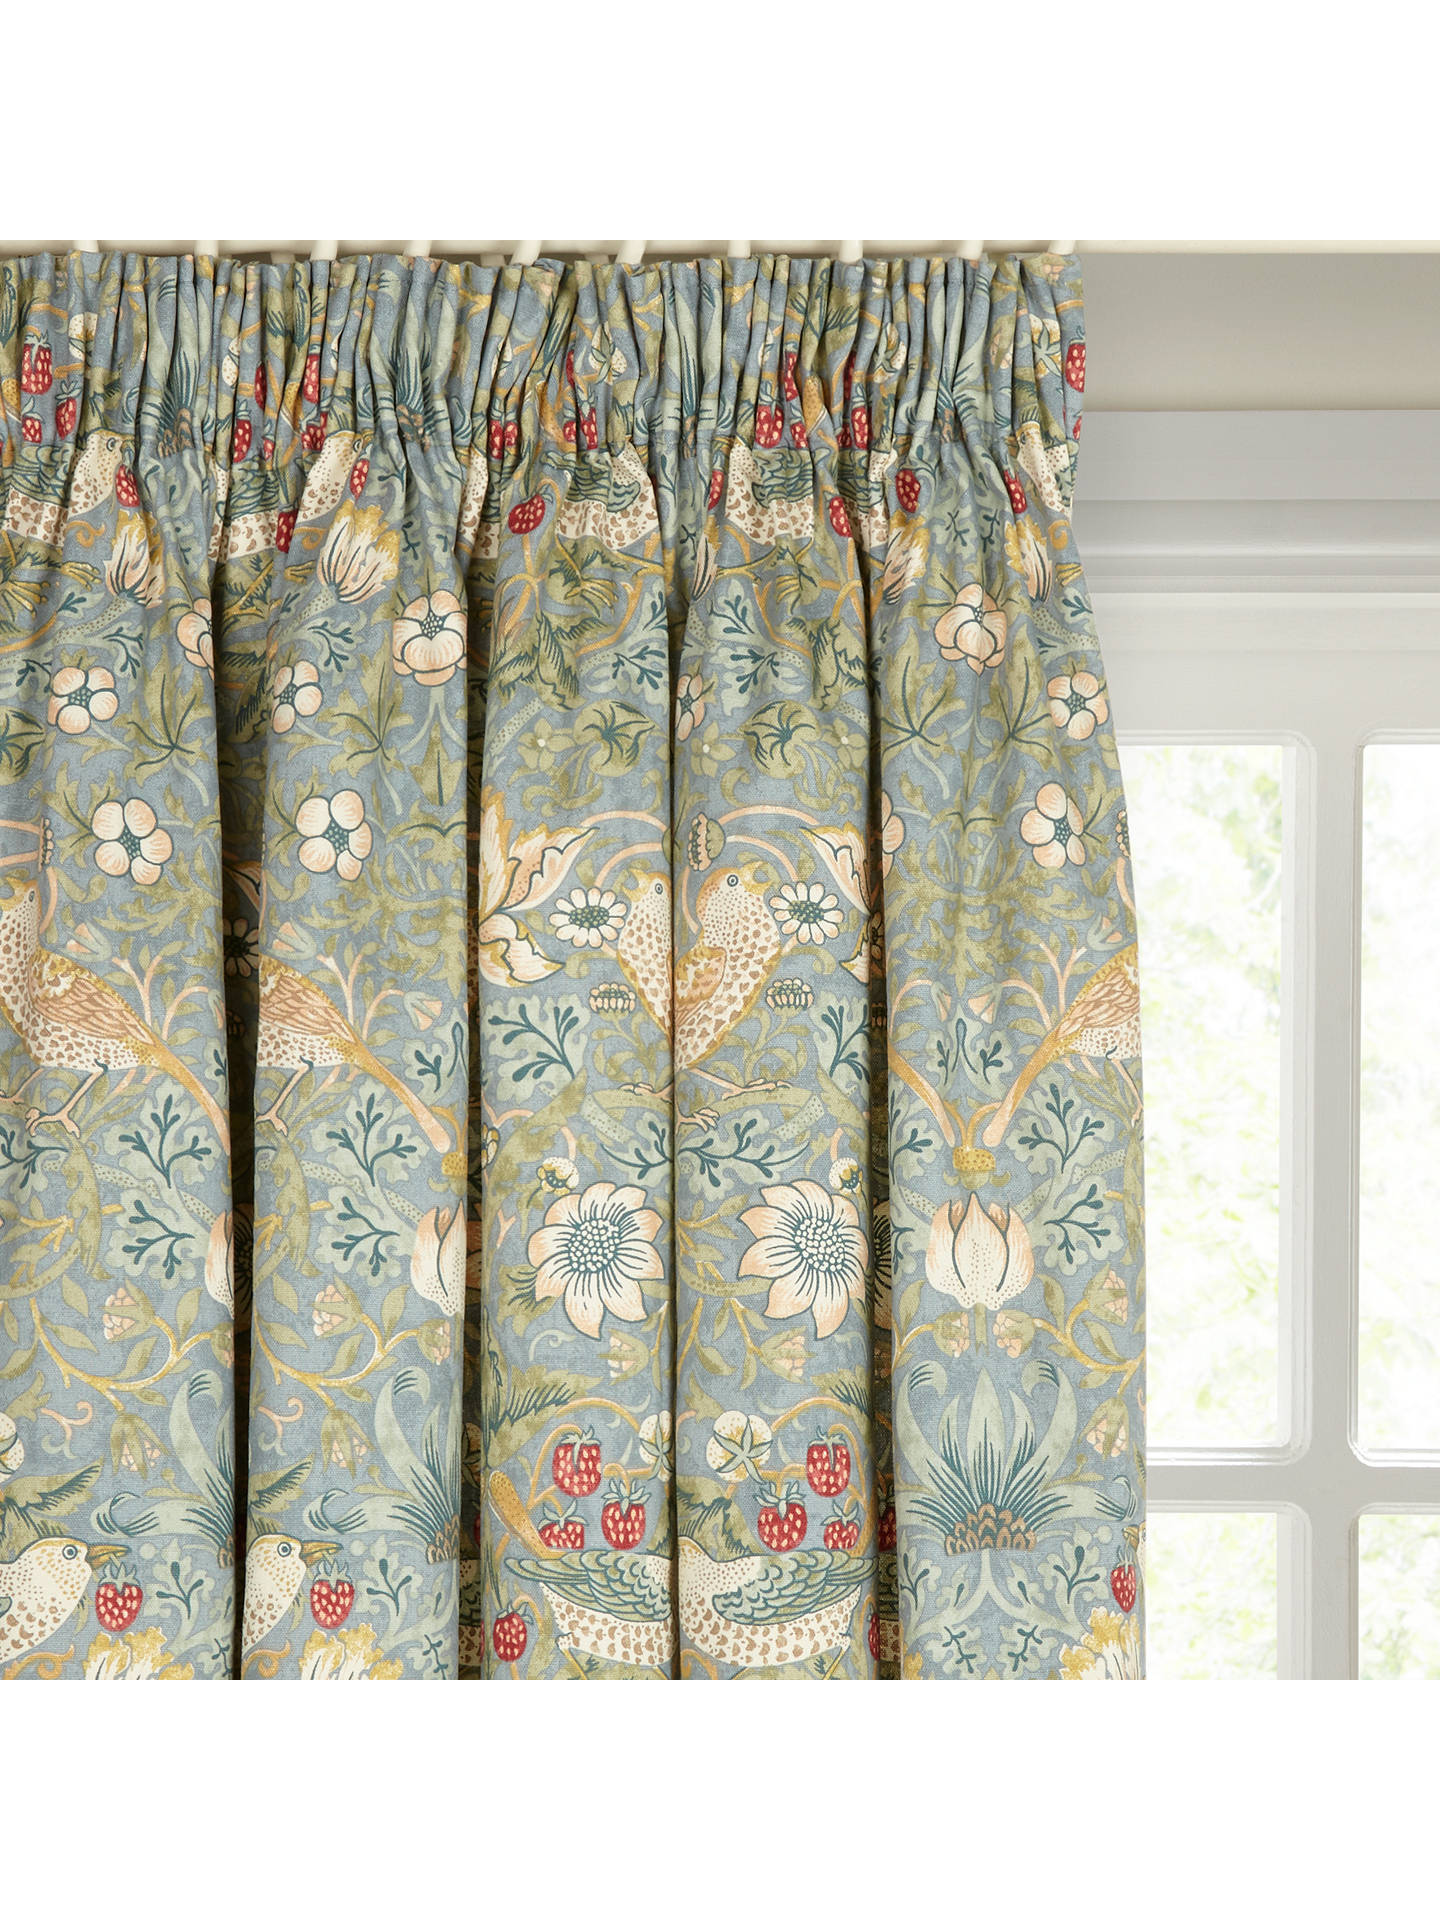 Strawberry thief pair lined pencil pleat curtains duck egg w167